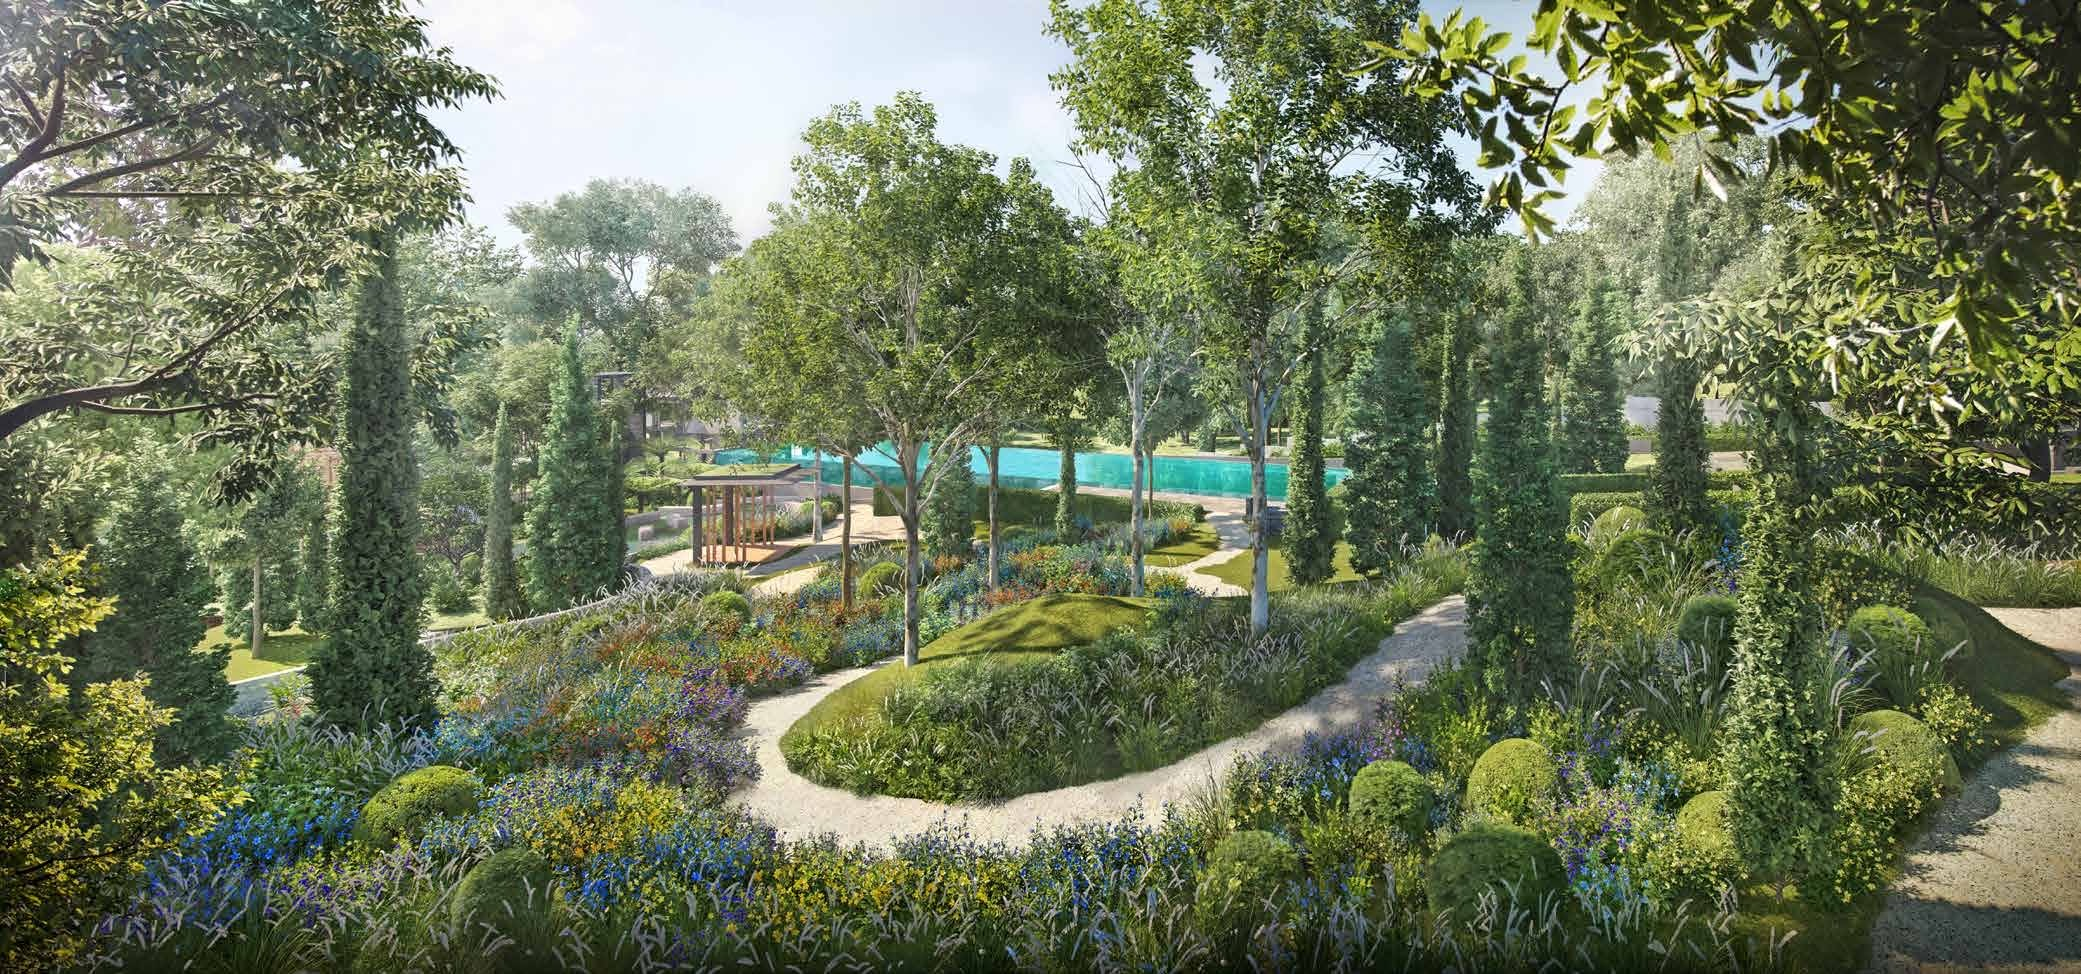 Extensive Gardens Inspired by the English Countryside